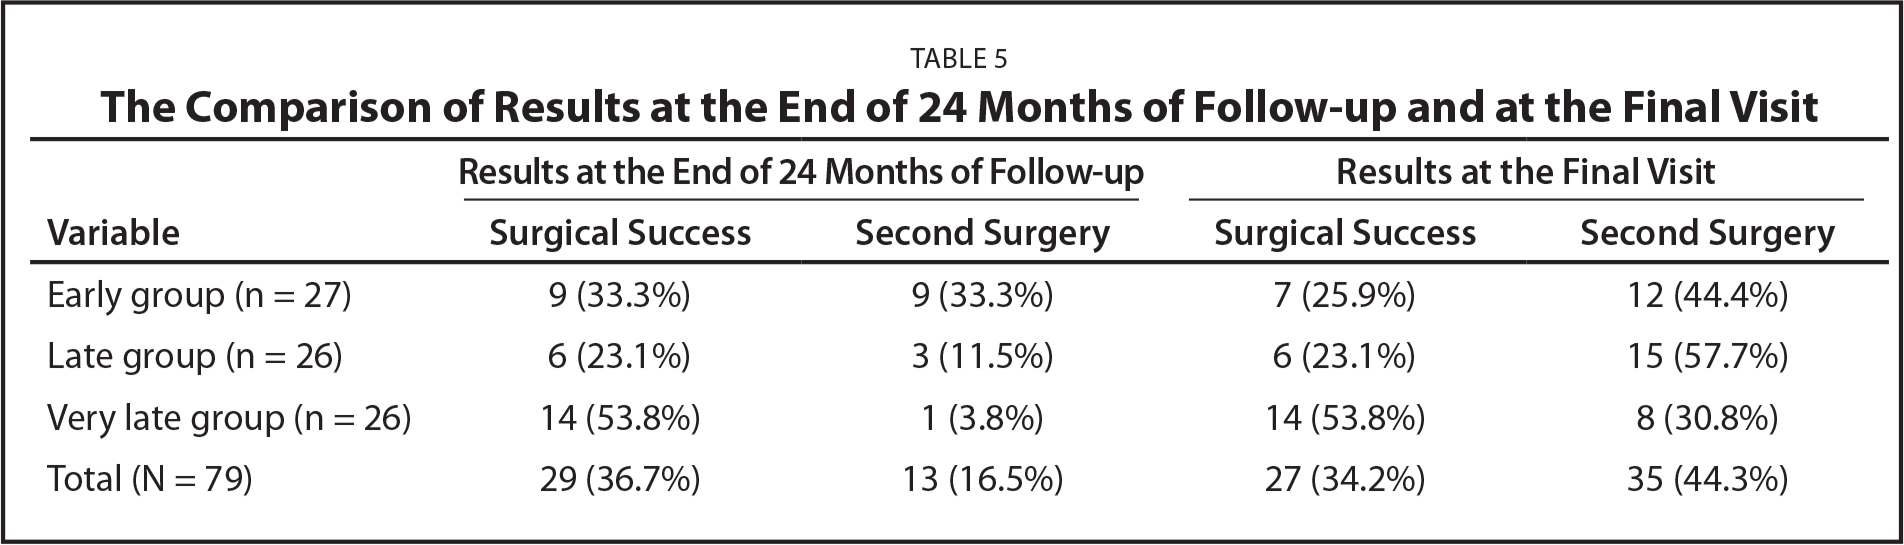 The Comparison of Results at the End of 24 Months of Follow-up and at the Final Visit